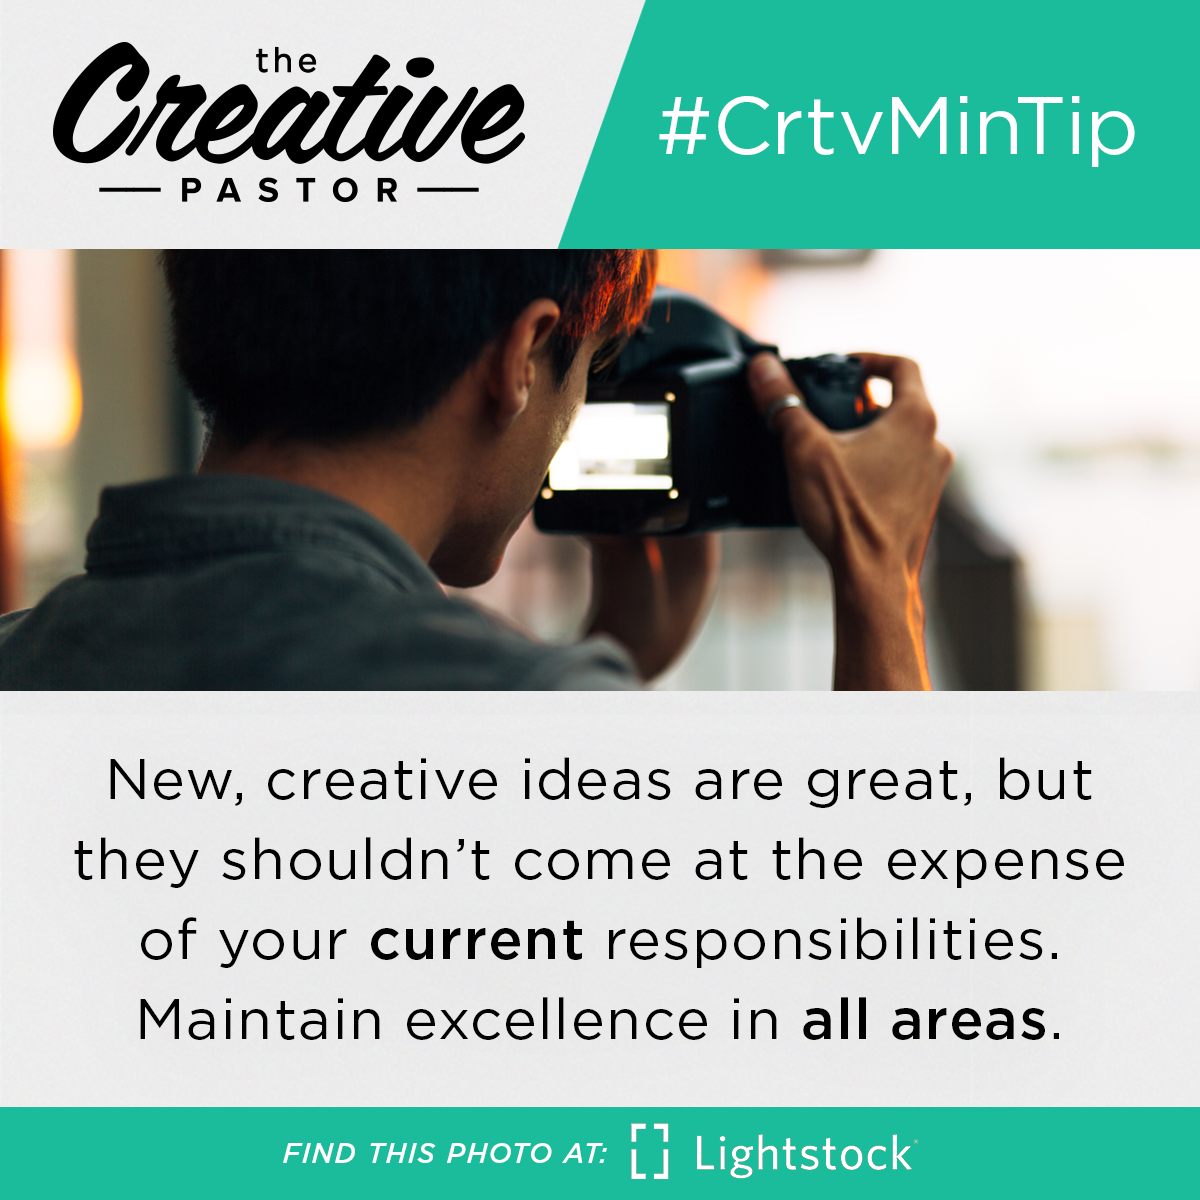 New, creative ideas are great, but they shouldn't come at the expense of your current responsibilities. Maintain excellence in all areas.